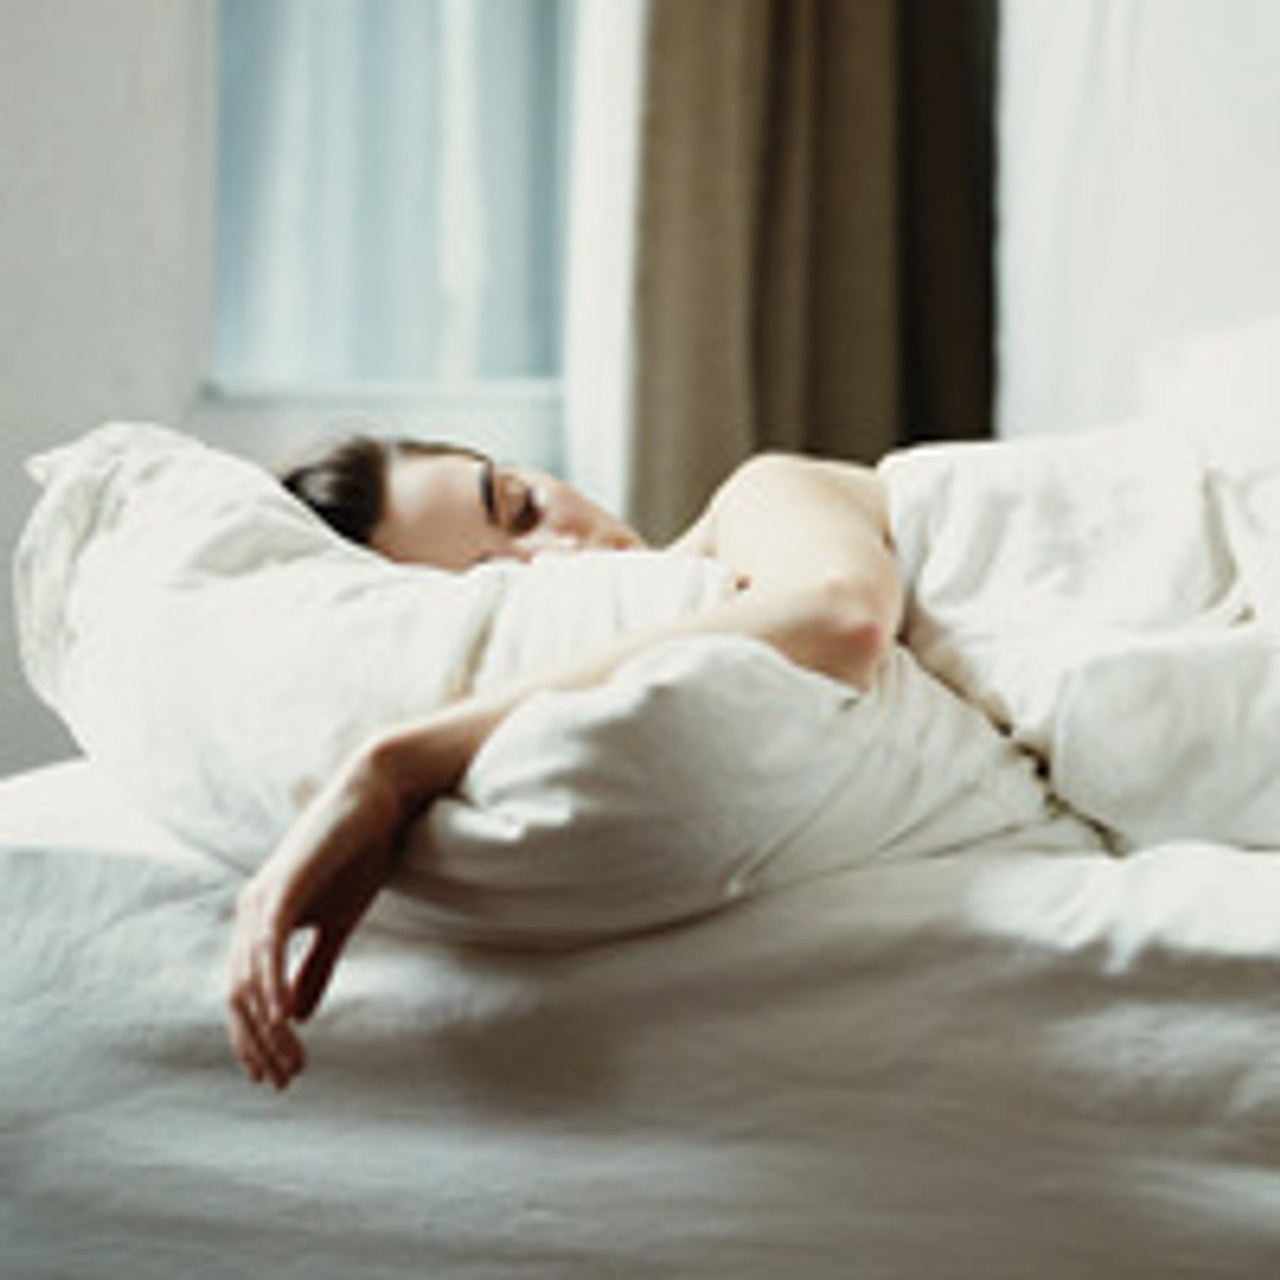 What Your Sleeping Positions Says About Your Personality